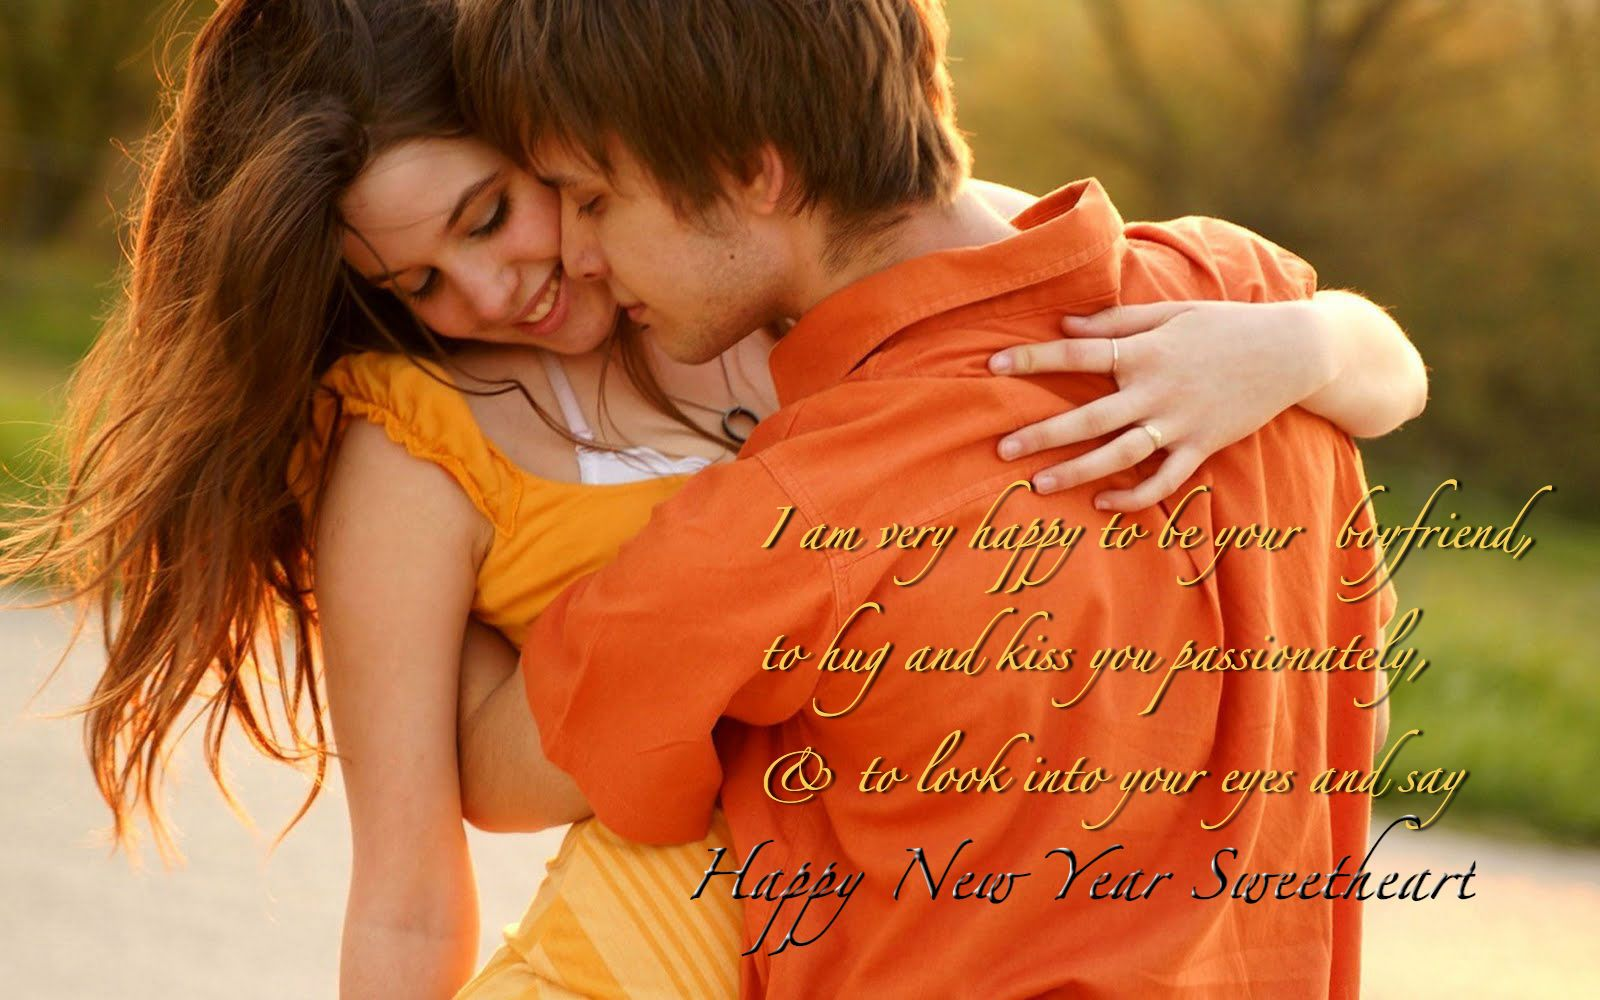 Romantic New Year Greeting Wallpaper in 2019  Love couple